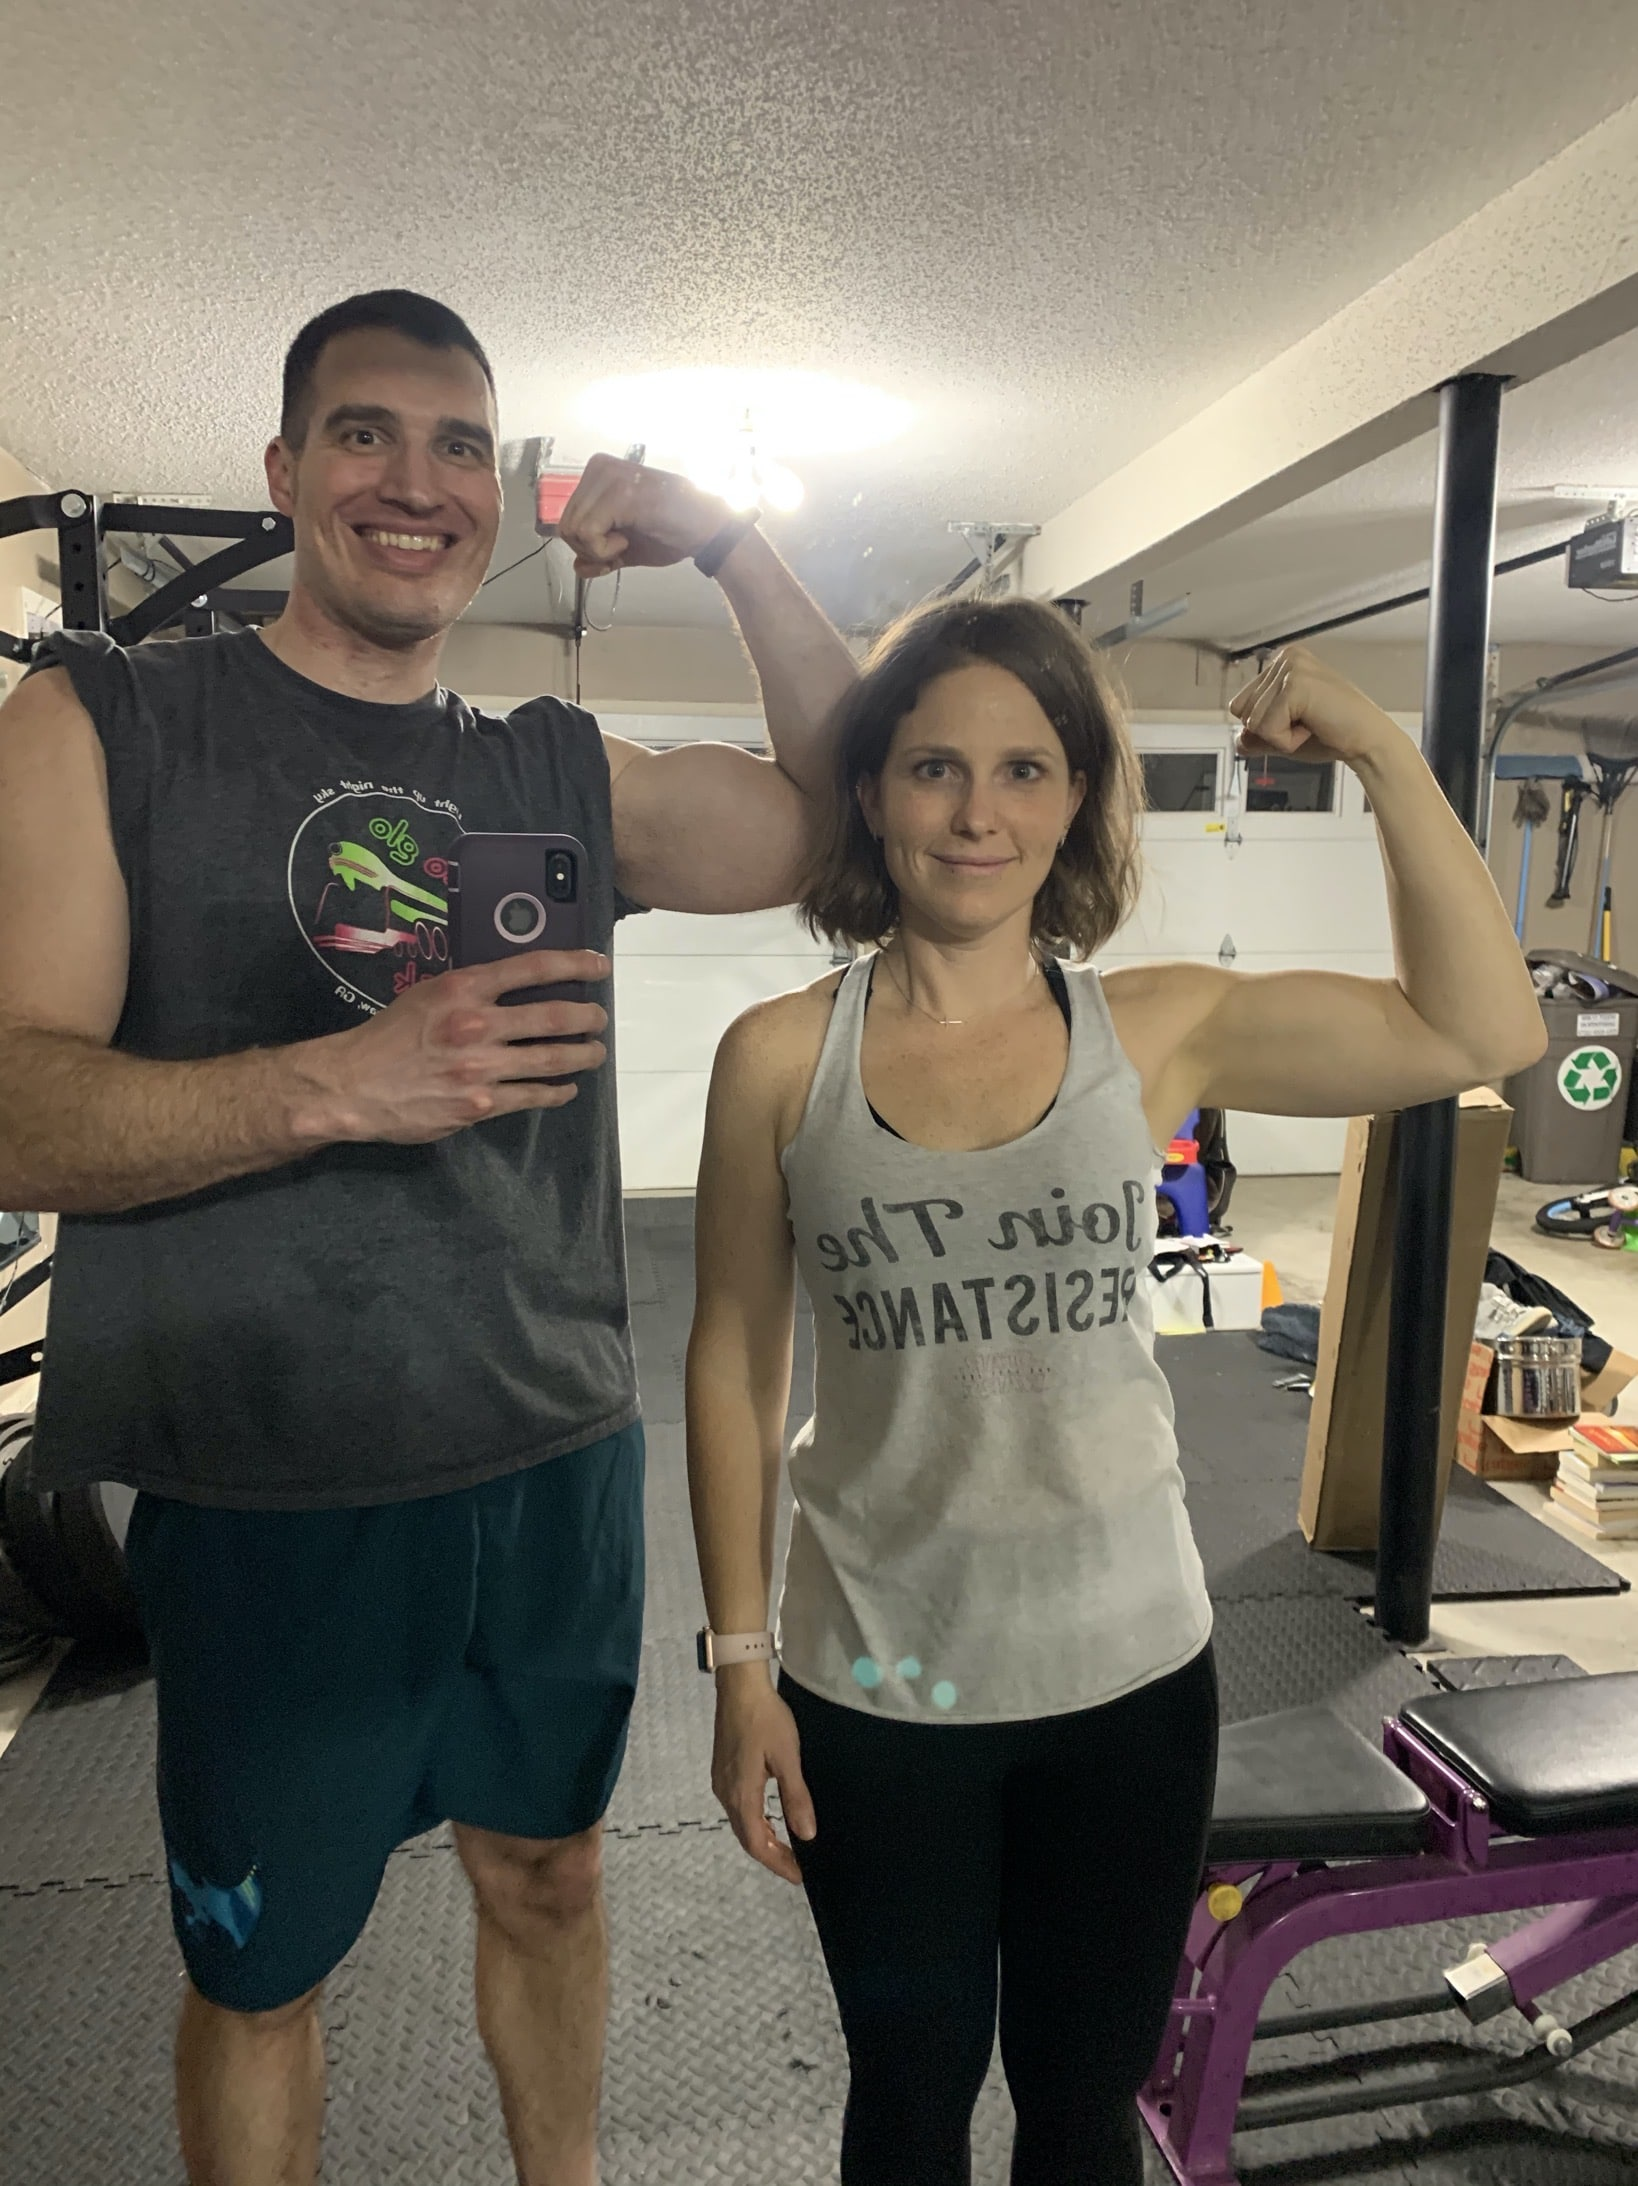 training my body with exercise